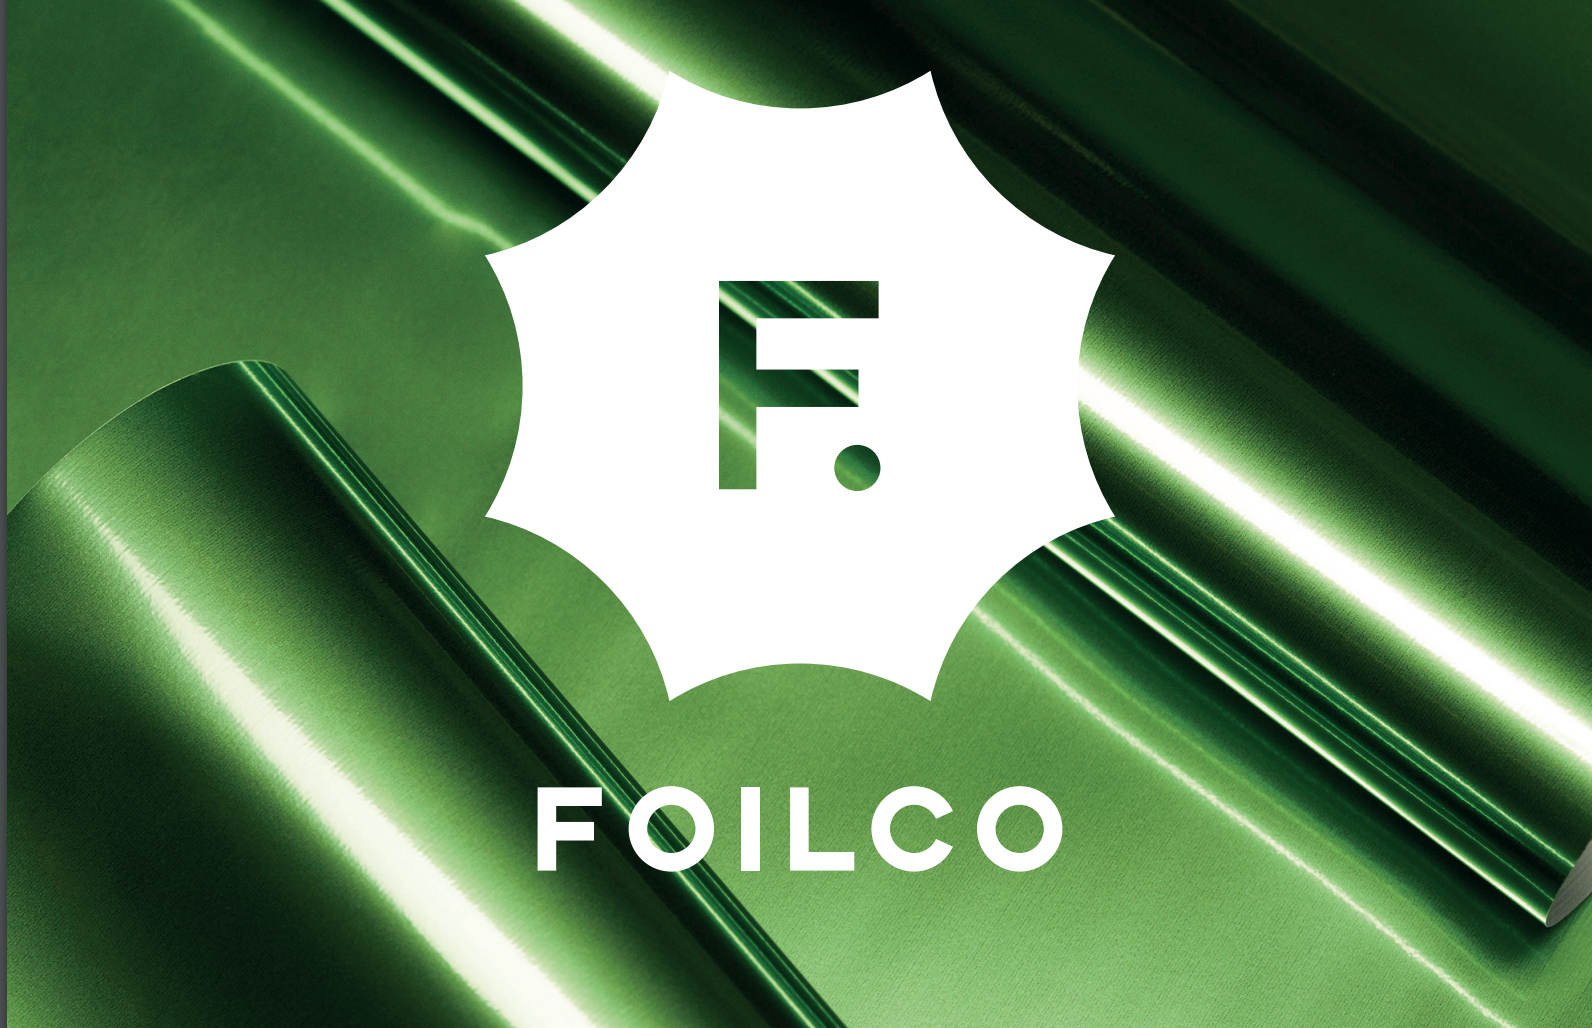 Above: Foilco has long been committed to the environmental concerns and feels that there are still a lot of misconceptions surrounding foil.